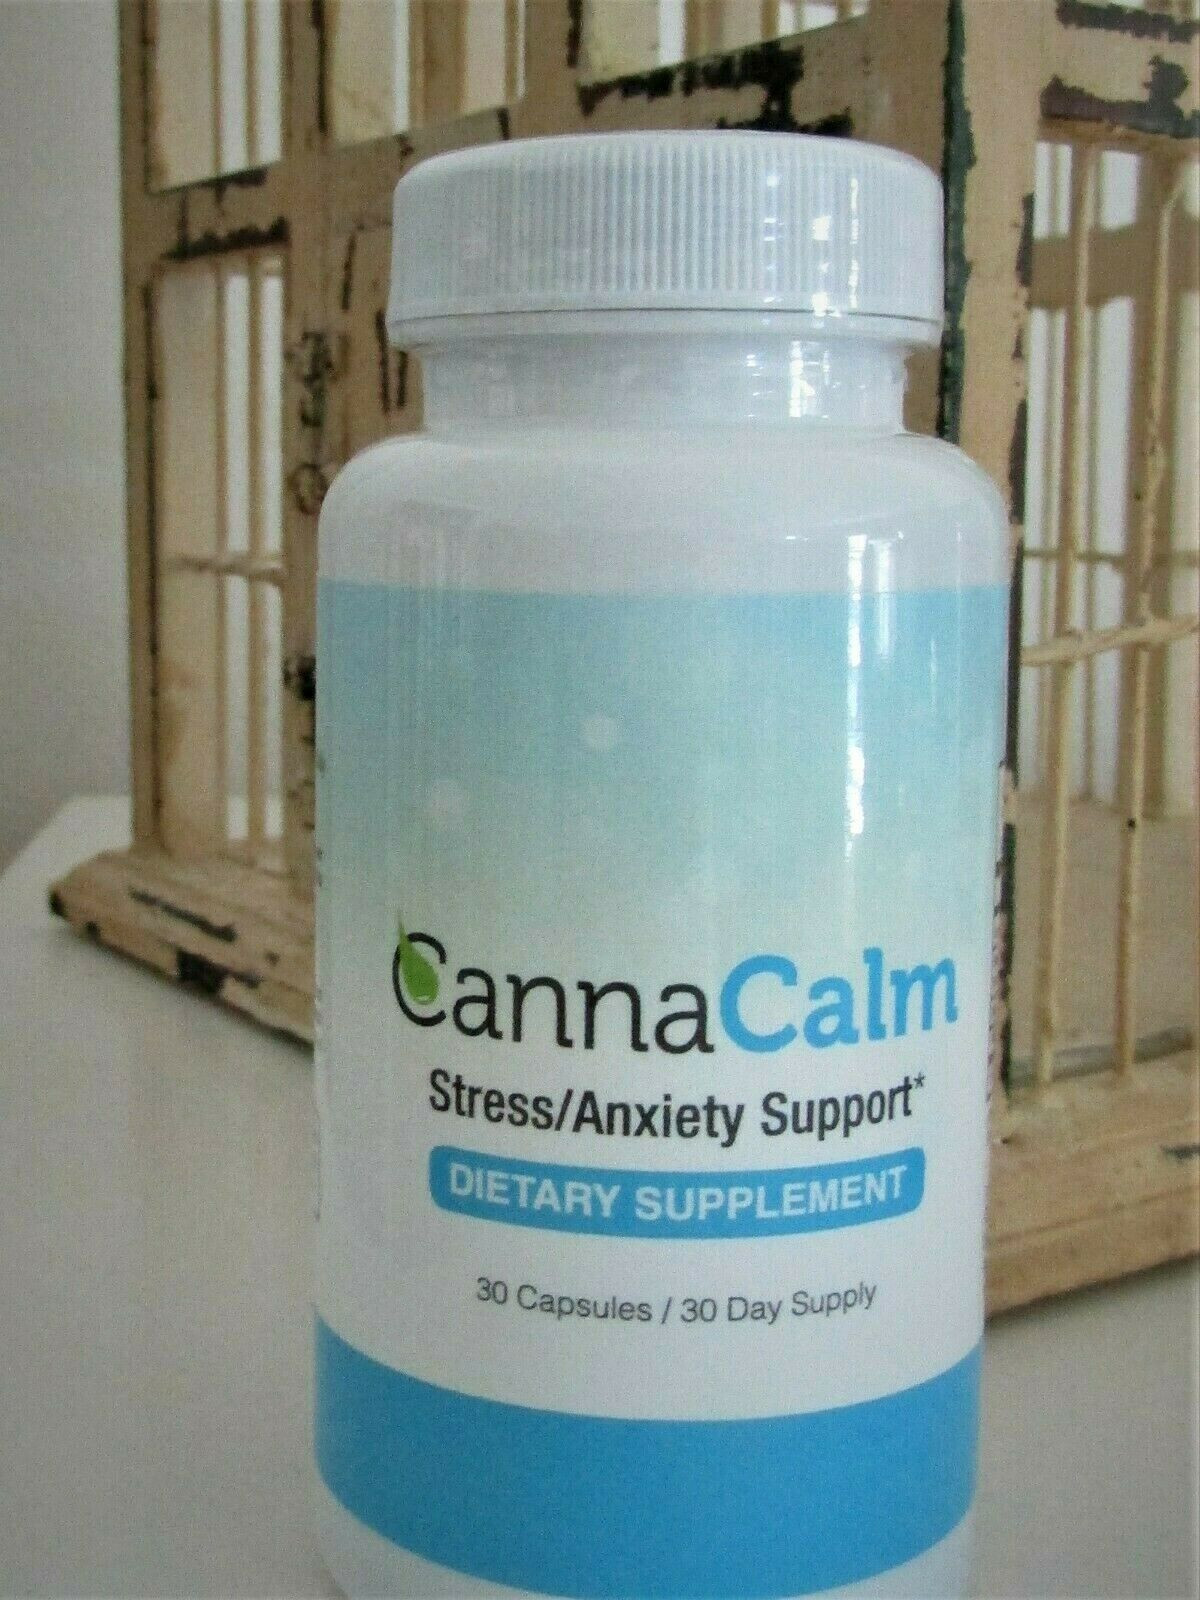 NEW CannaCalm Stress/Anxiety Support~Dietary Supplement~30 Caps~30 Day Supply